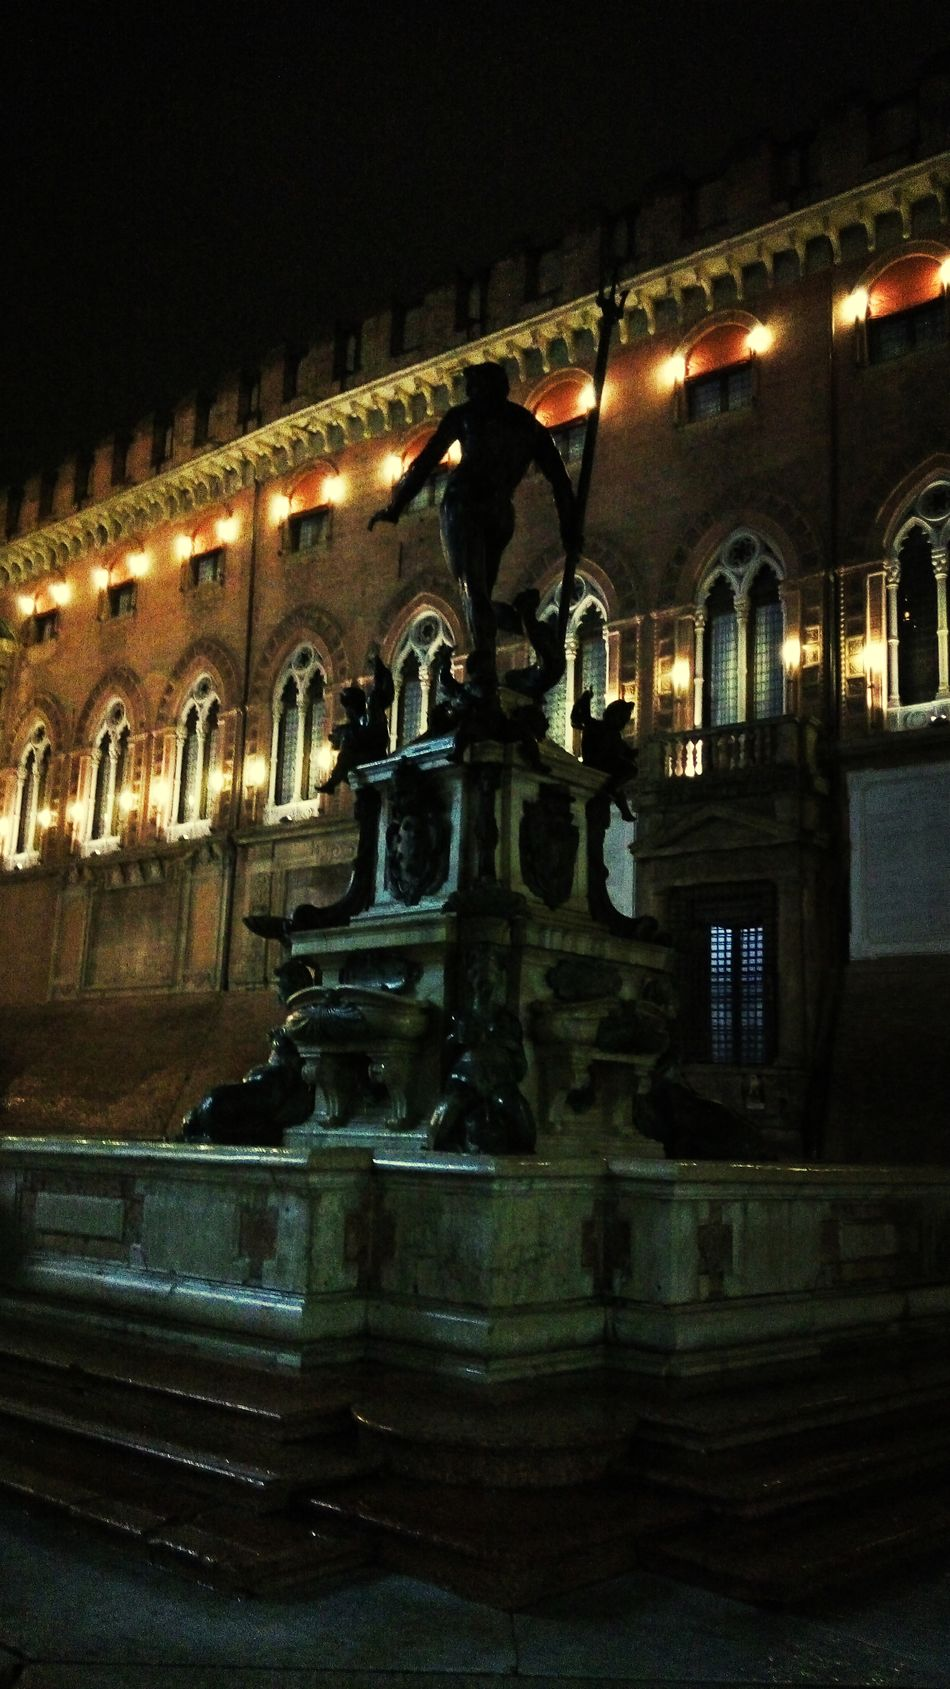 Nocturn Neptunus Bologna, Italy Nightphotography Historical Sights Discover Your City